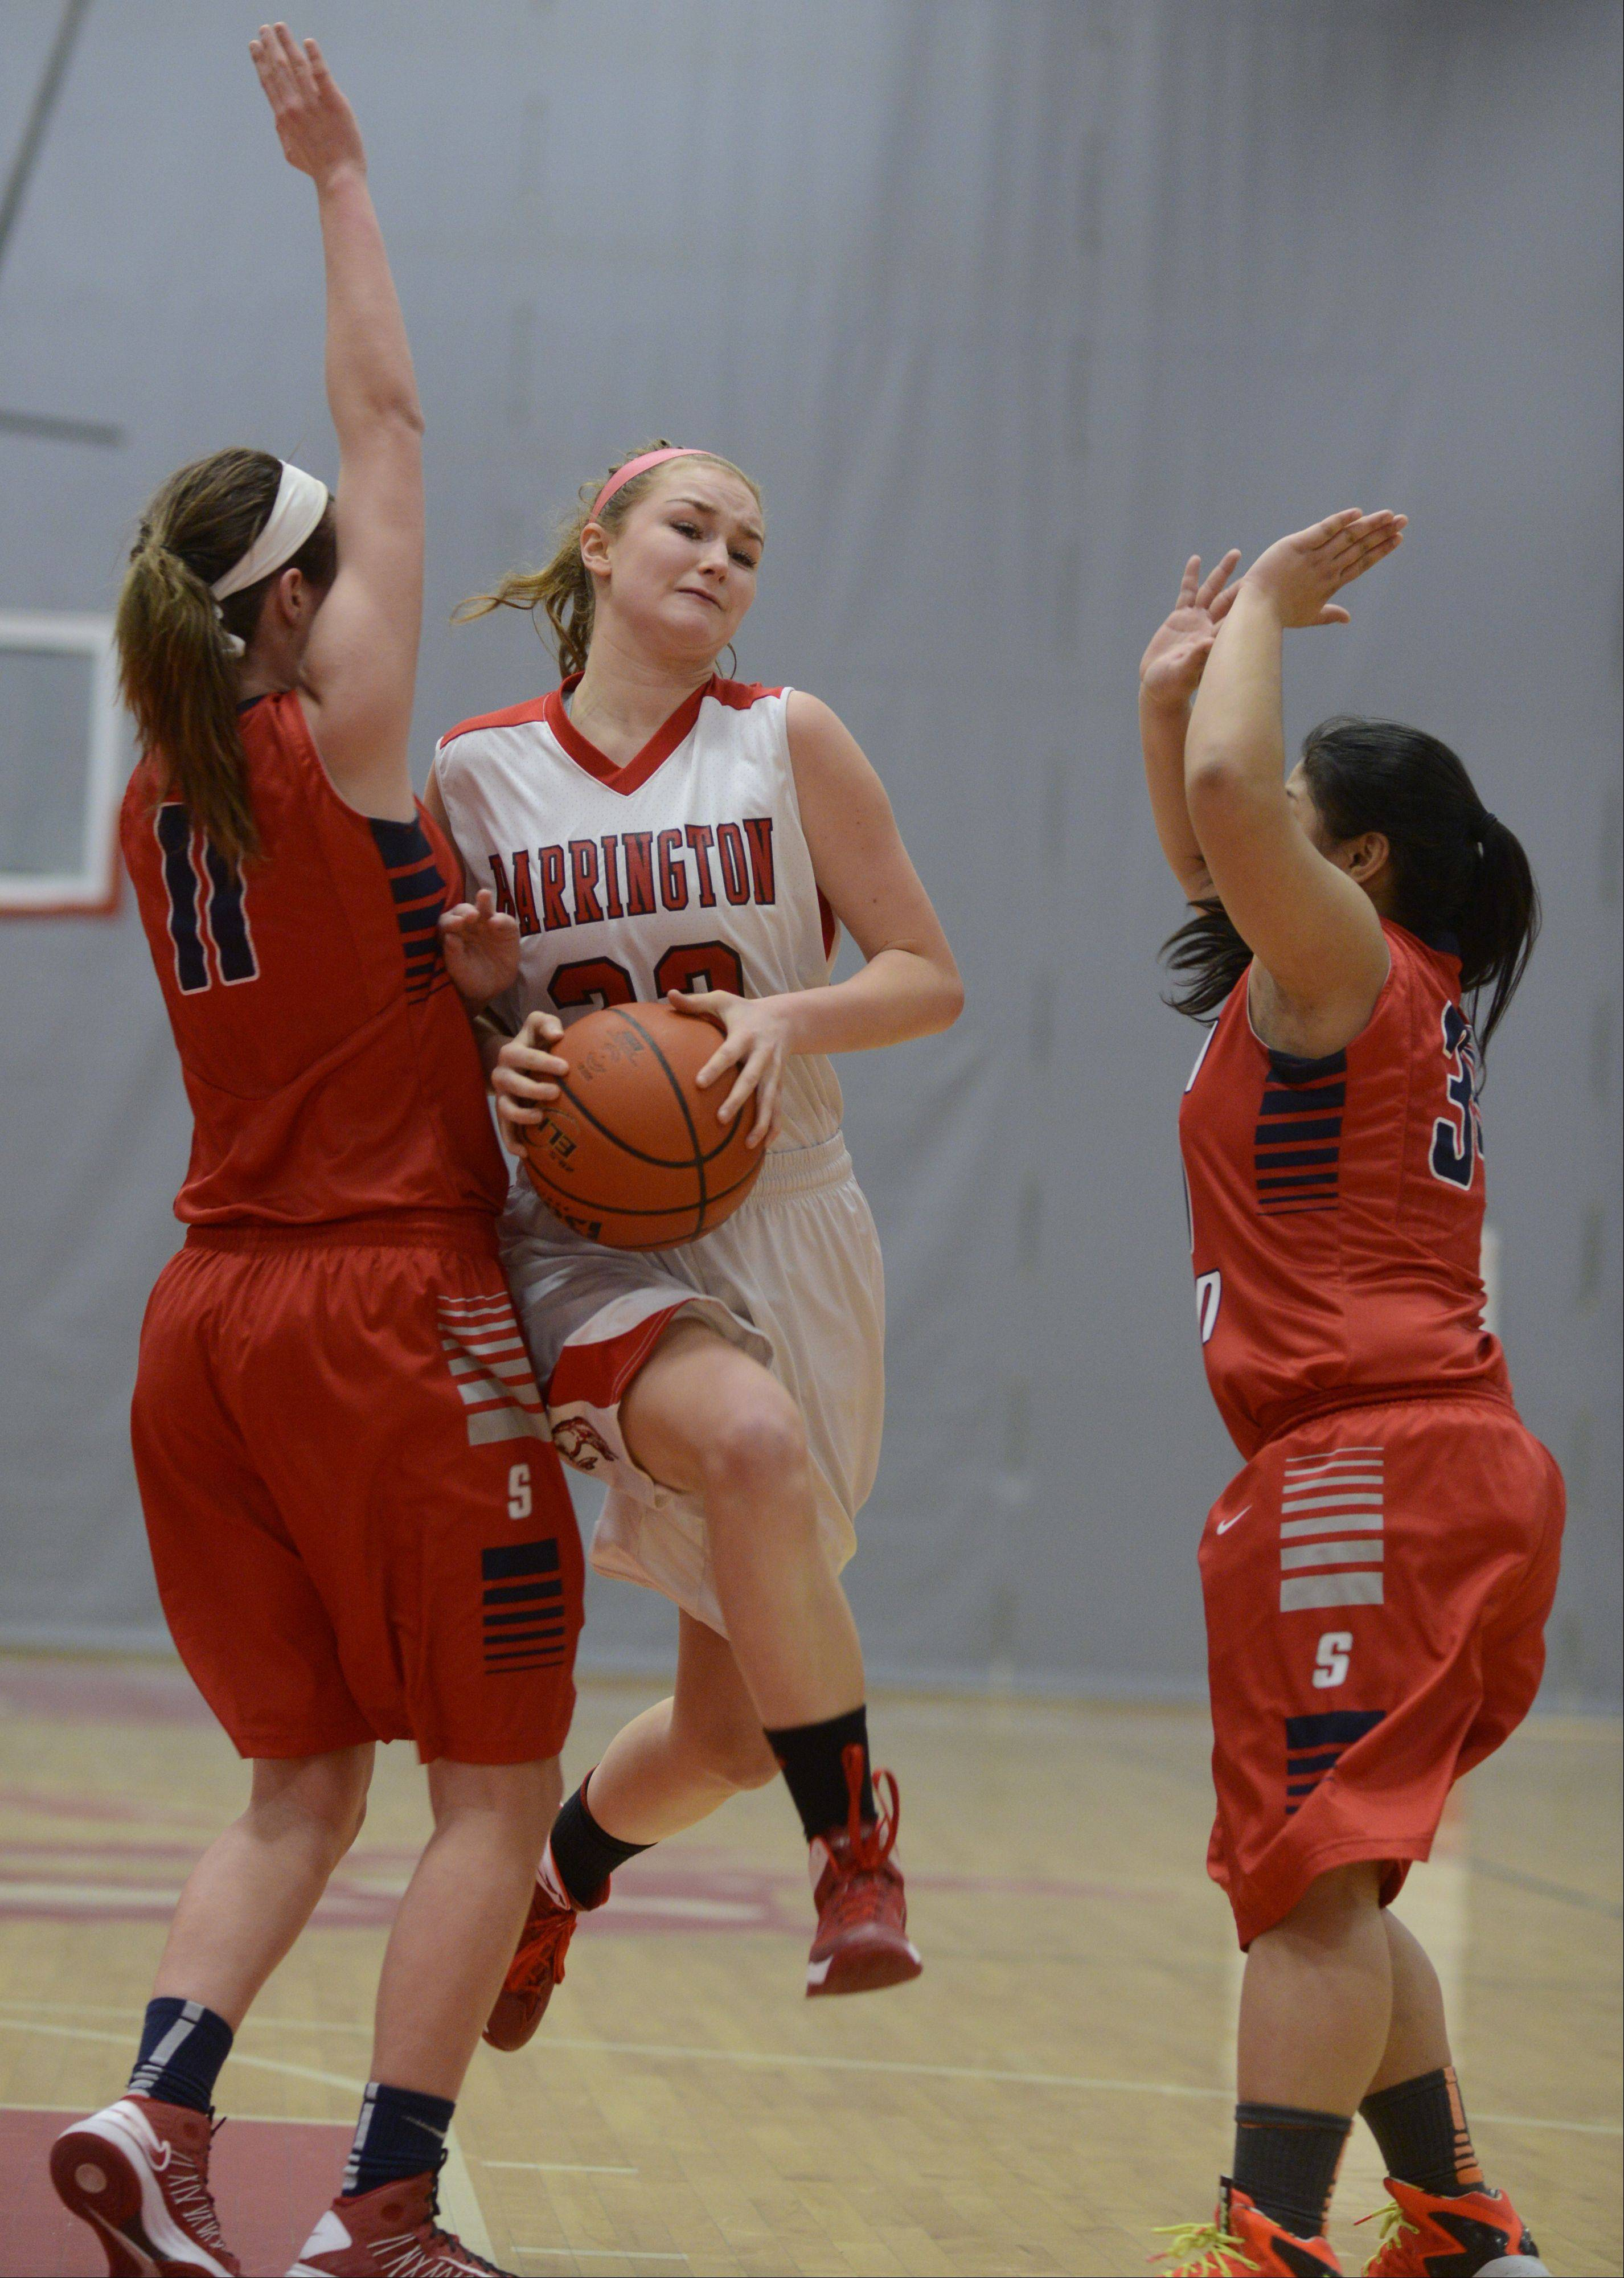 Images from the South Elgin vs. Barrington girls basketball game in Barrington Wednesday, Feb. 5, 2014.